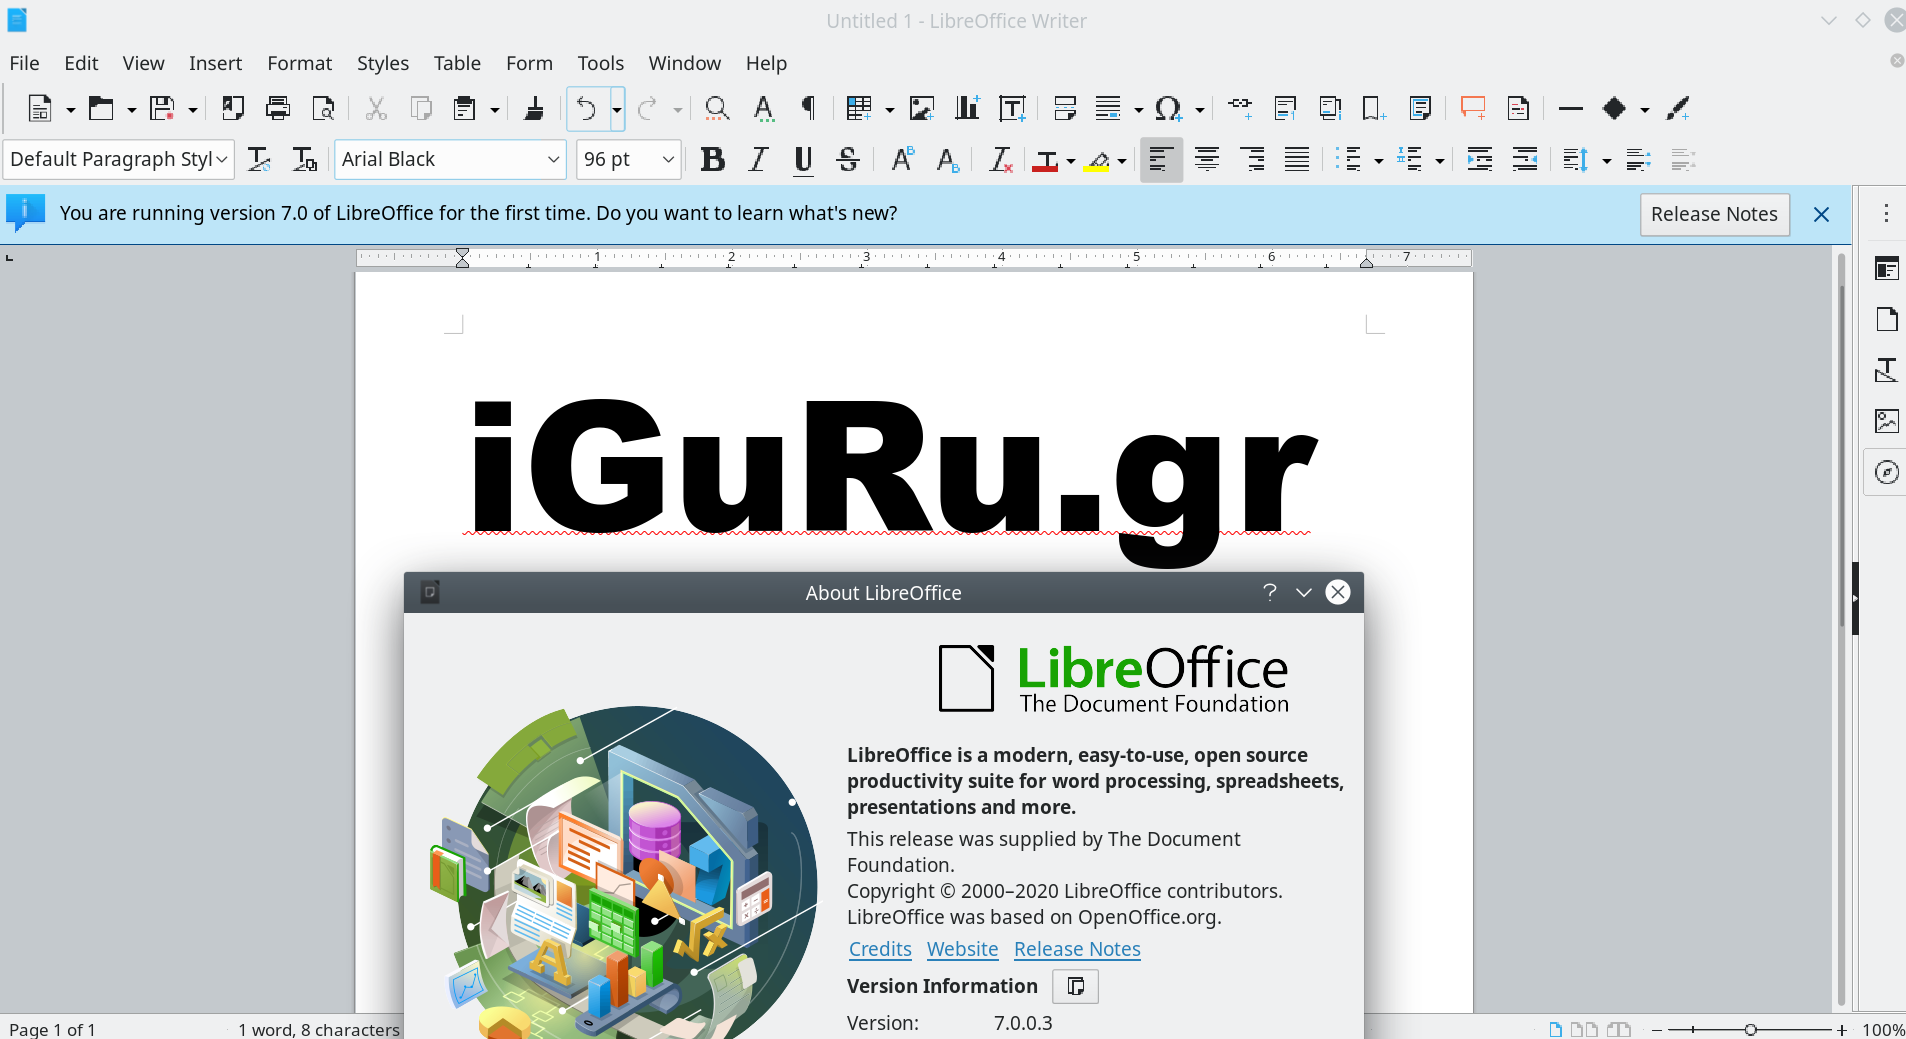 libreoffice 7 - LibreOffice 7.1.0 stable has just been released